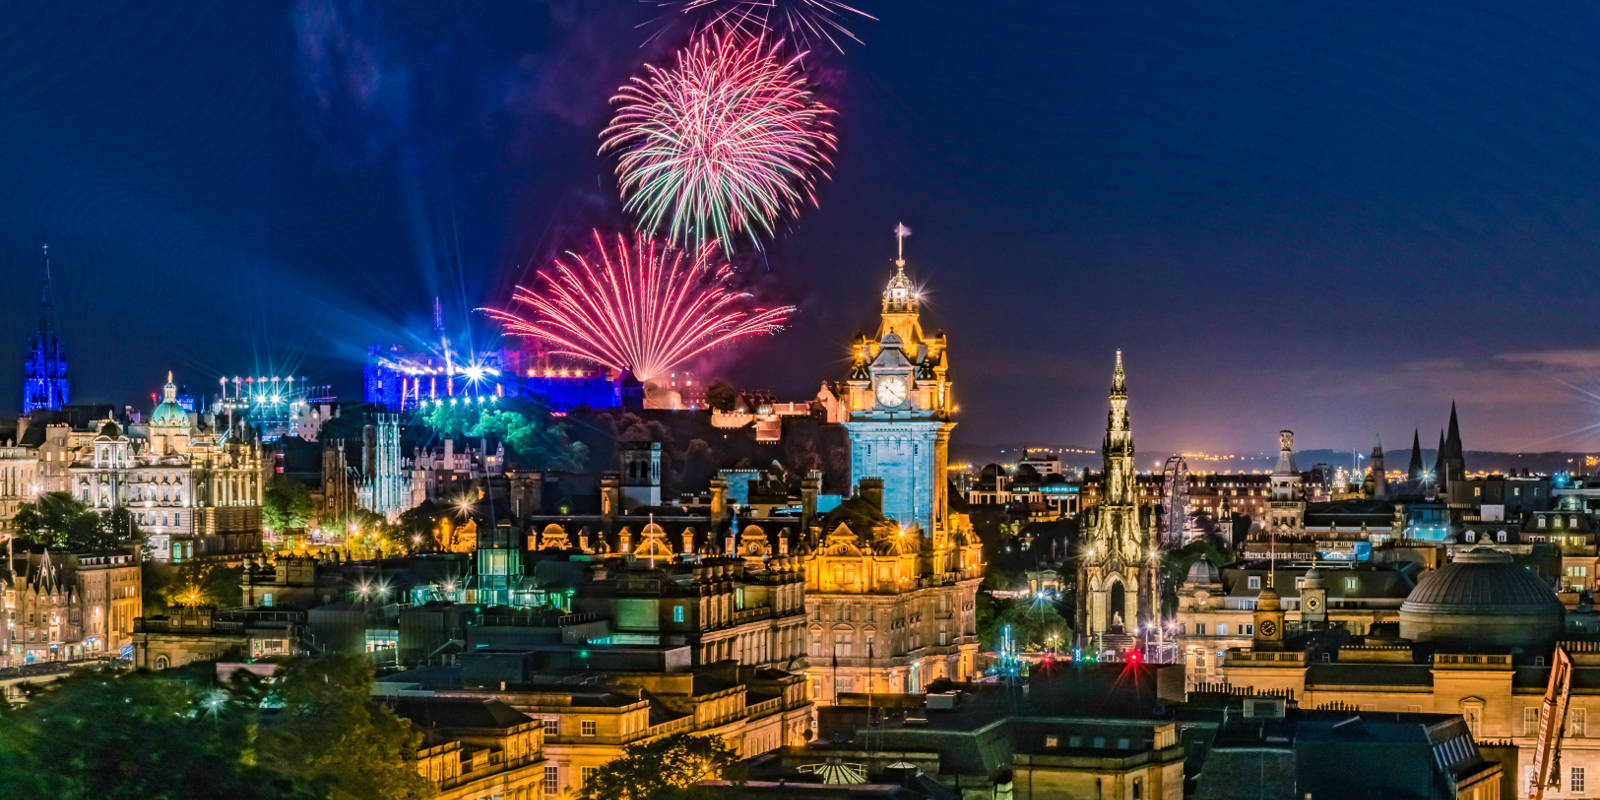 View of Edinburgh with fireworks above Castle